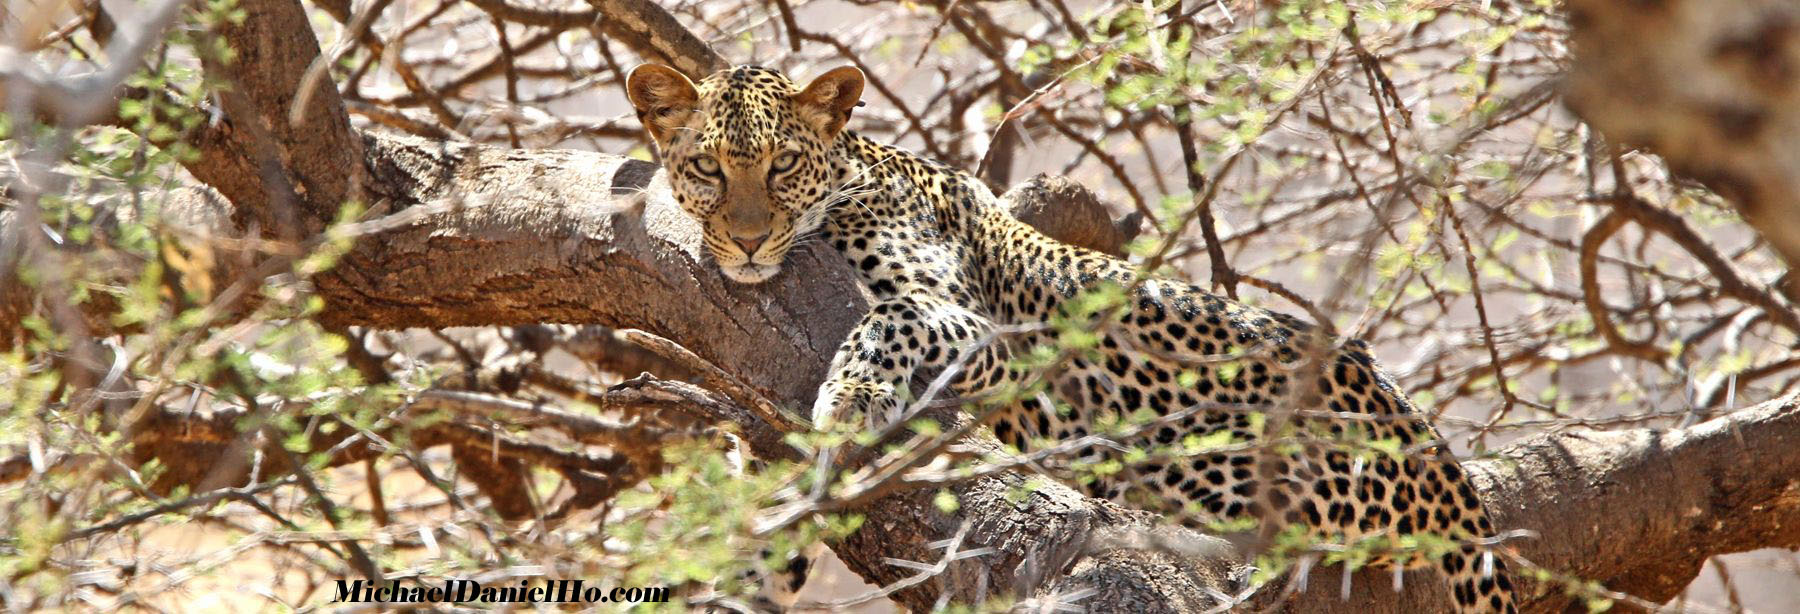 photo of Leopard in Maasai Mara